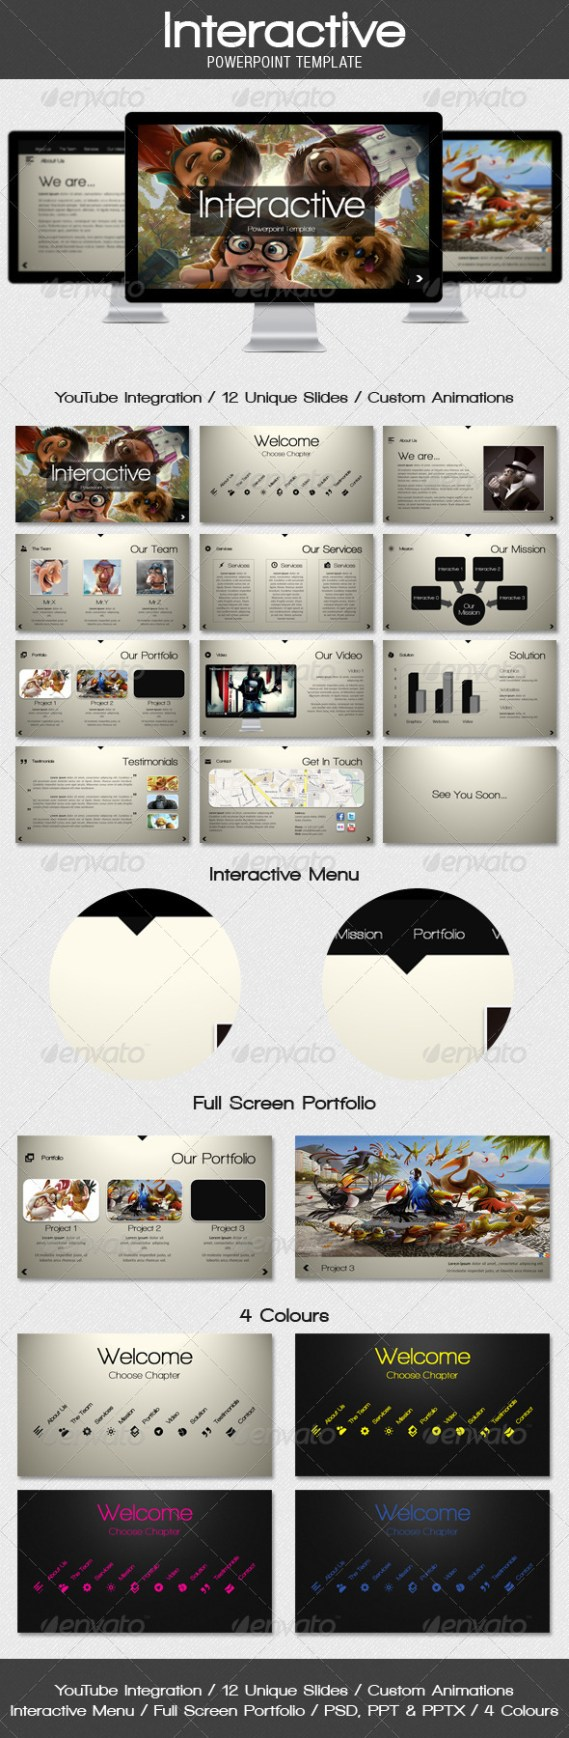 Selection of Eye-Catching PowerPoint Templates